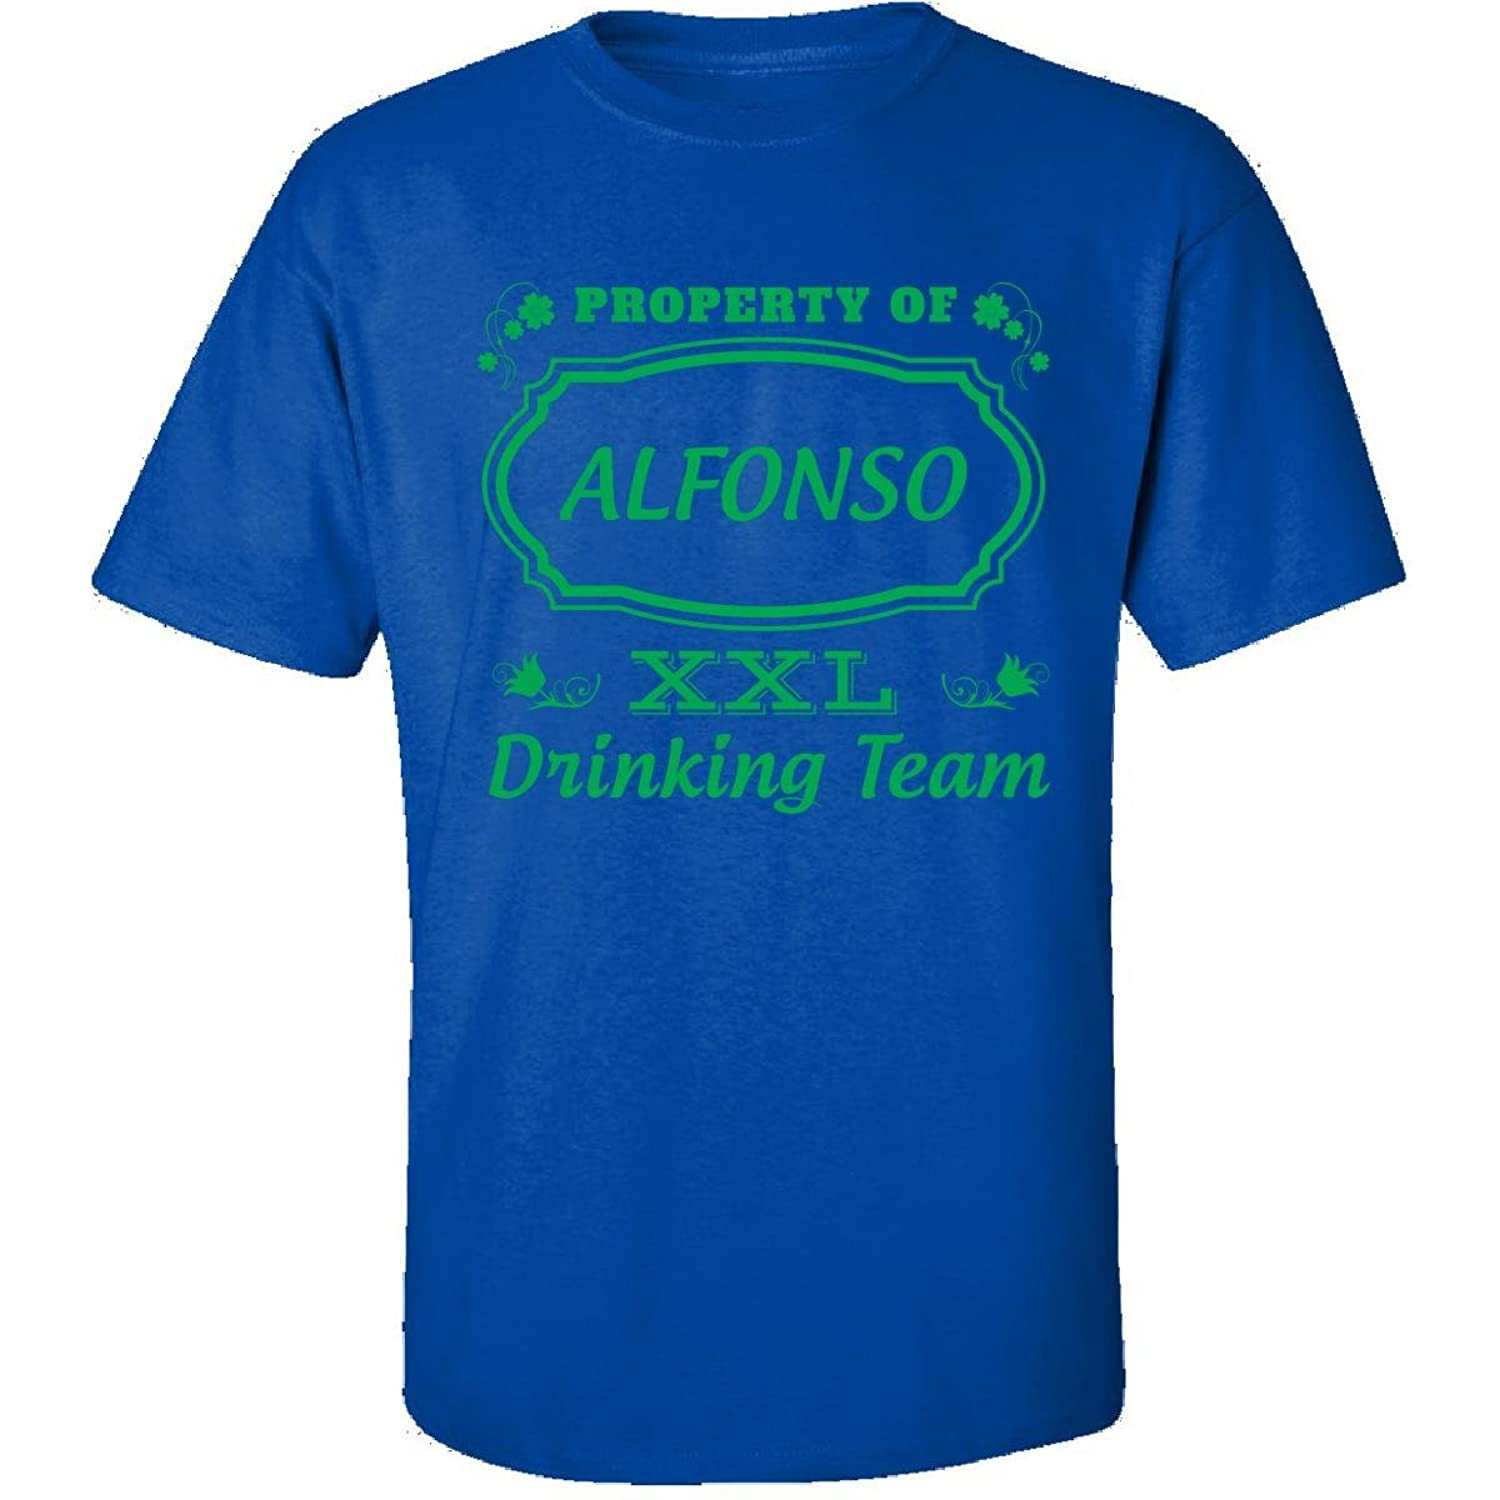 Property Of Alfonso St Patrick Day Beer Drinking Team - Adult Shirt